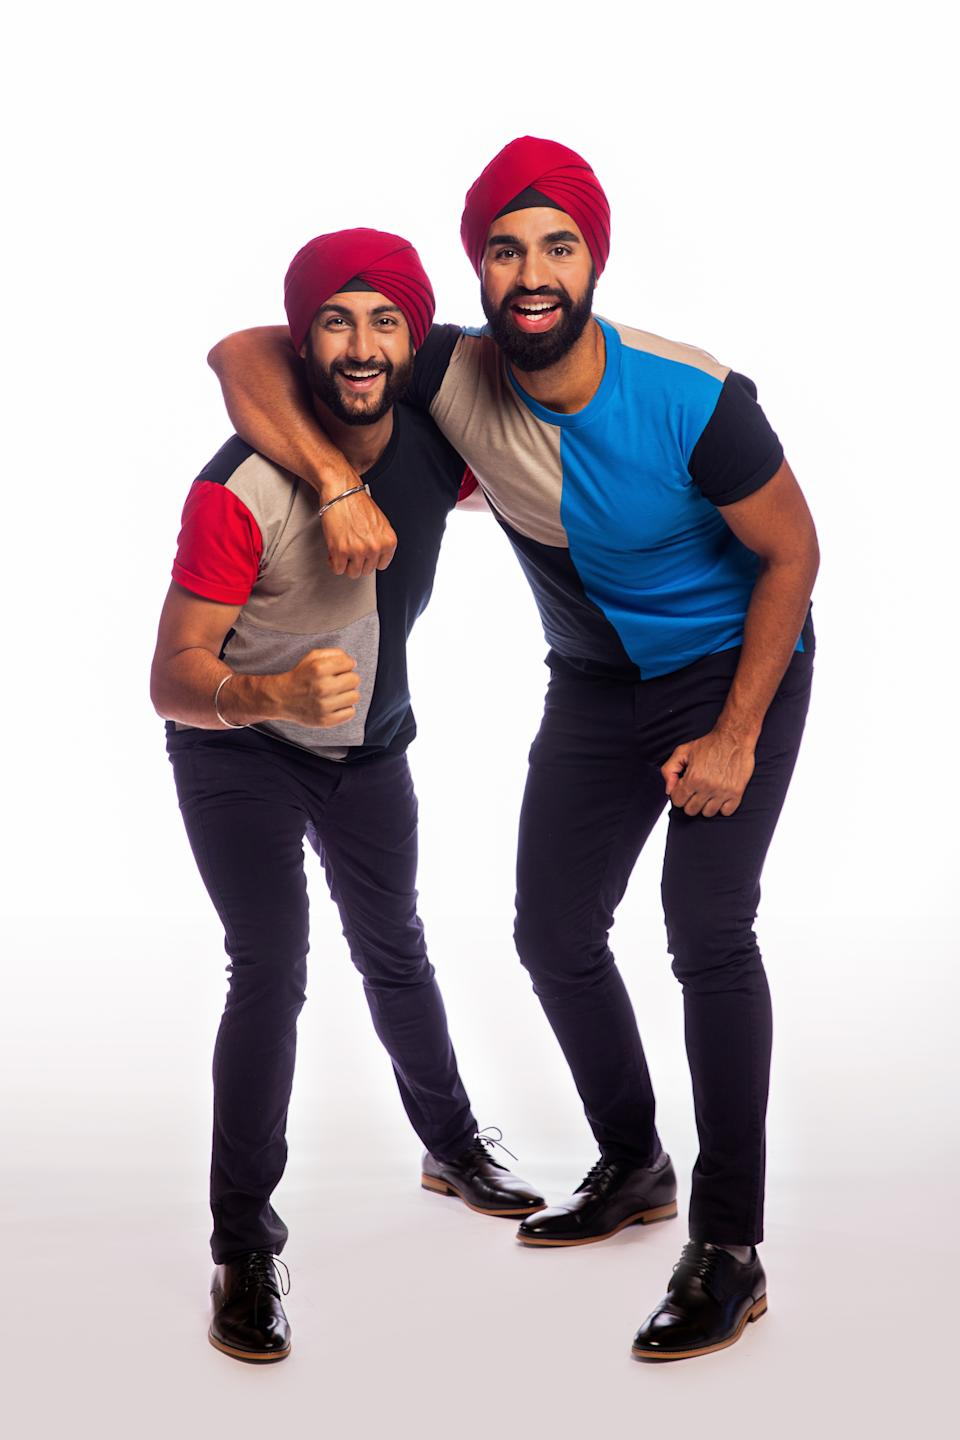 The Amazing Race Australia 2021 contestants Jaskirat and Anurag, NSW. Photo: Channel 10 (supplied).